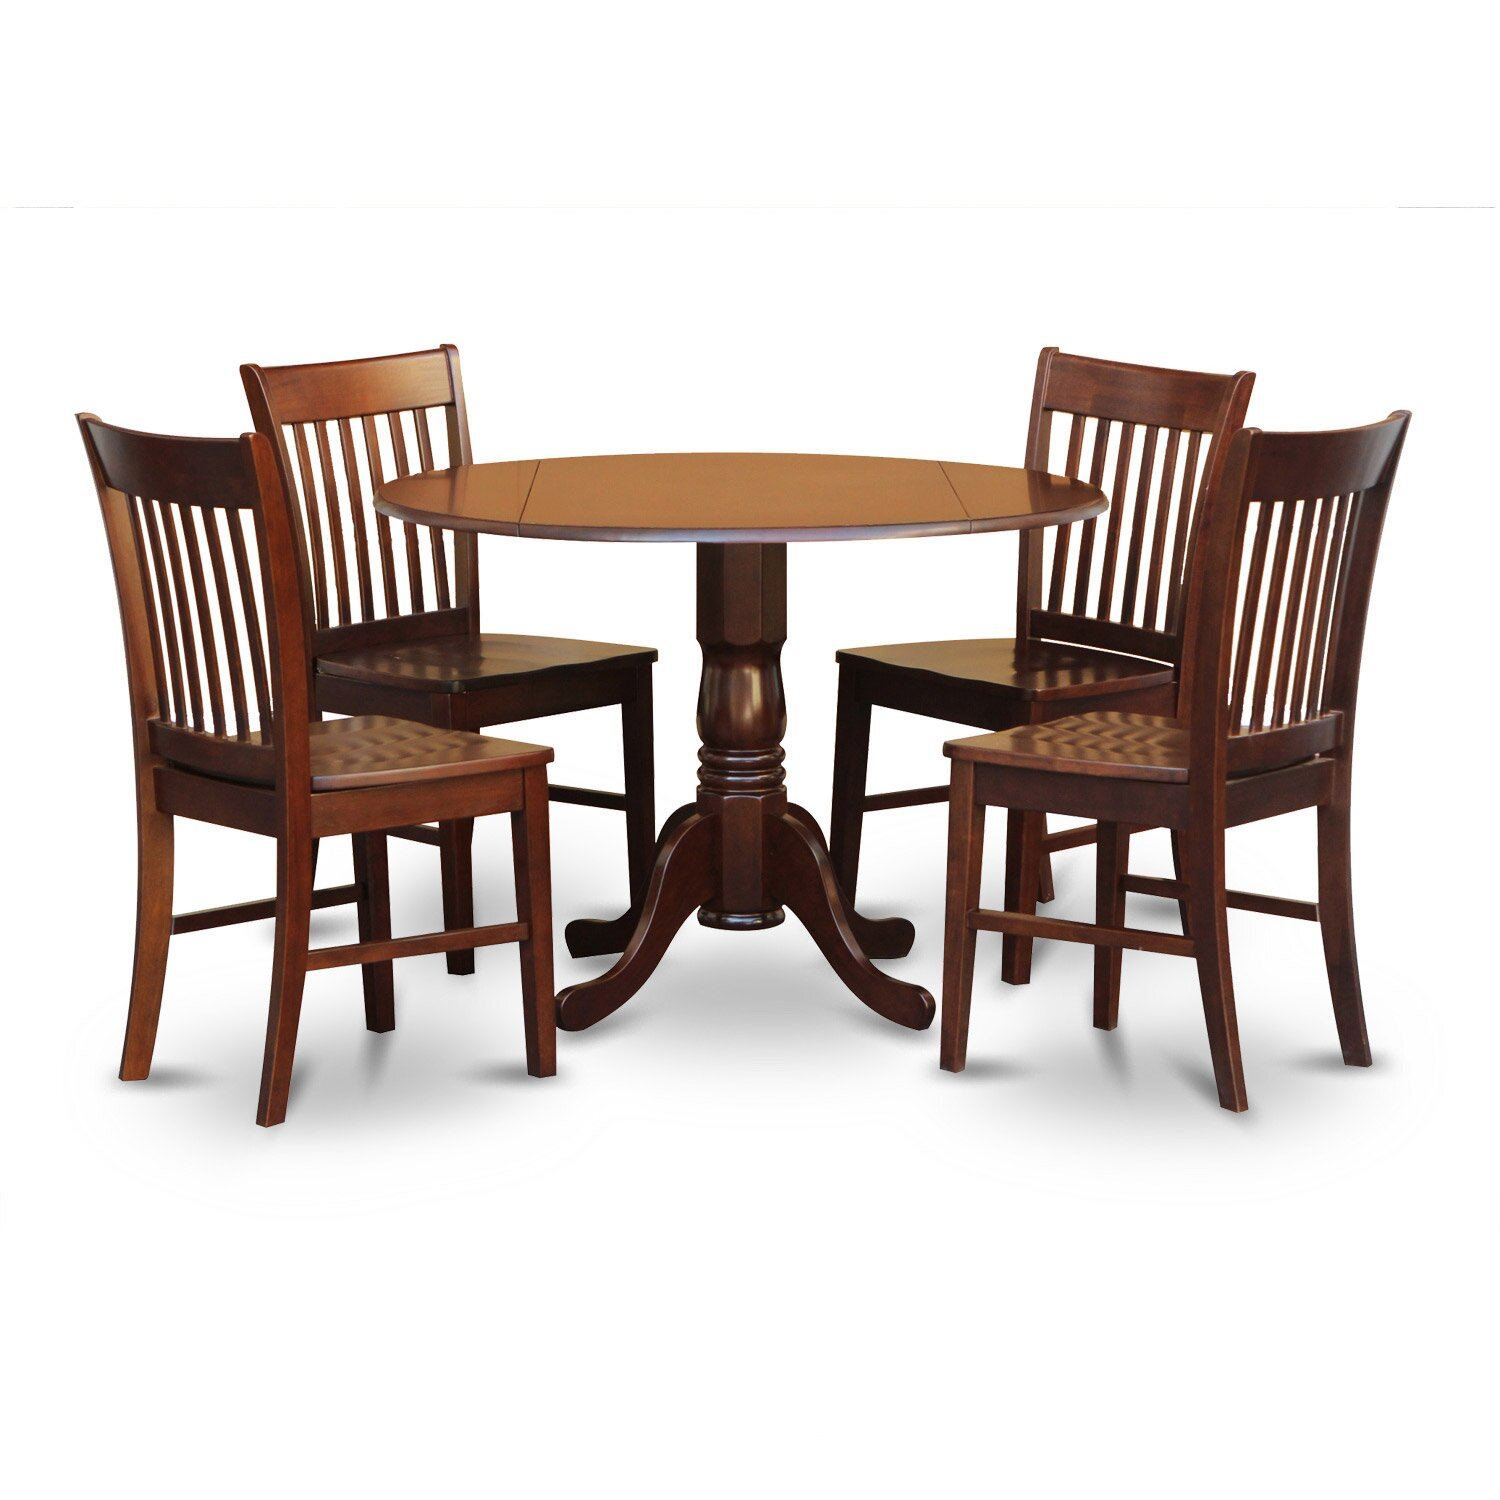 east west dublin 5 piece dining set reviews wayfair